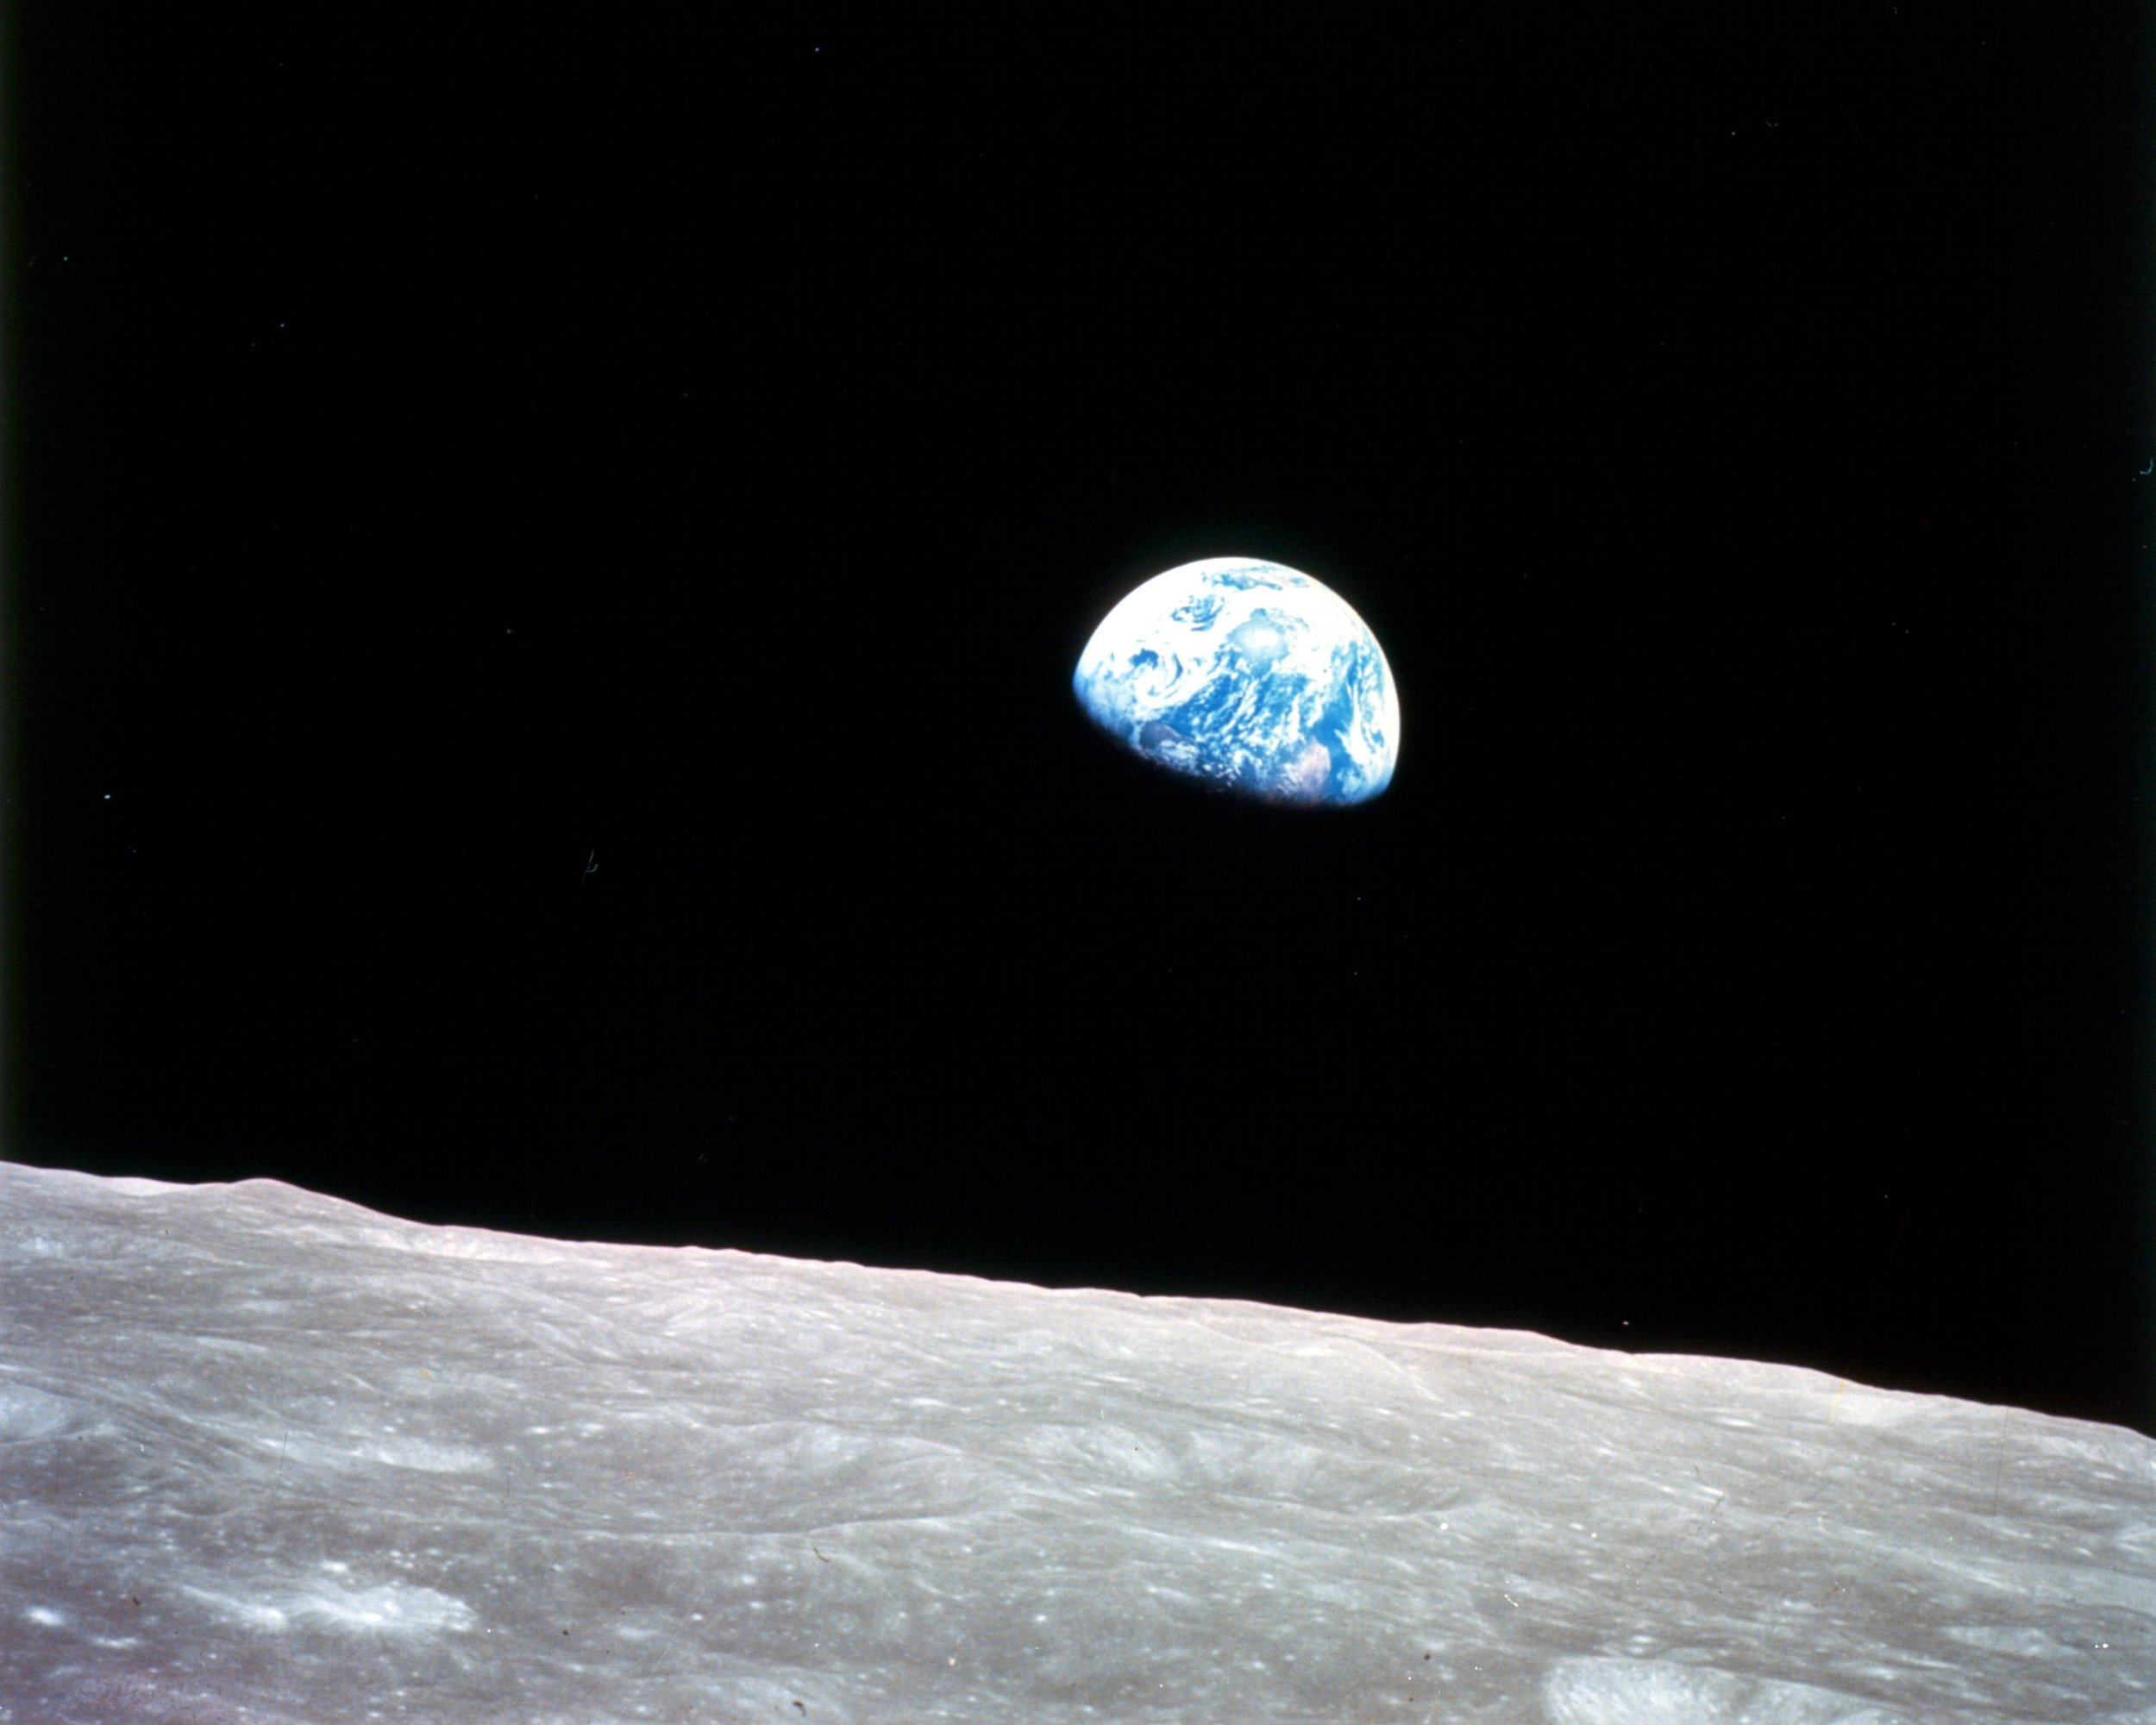 """Earthrise is a photograph of the Earth and parts of the Moon's surface taken by astronaut William Anders in 1968, during the Apollo 8 mission. Nature photographer Galen Rowell declared it """"the most influential environmental photograph ever taken."""" ( Source )"""